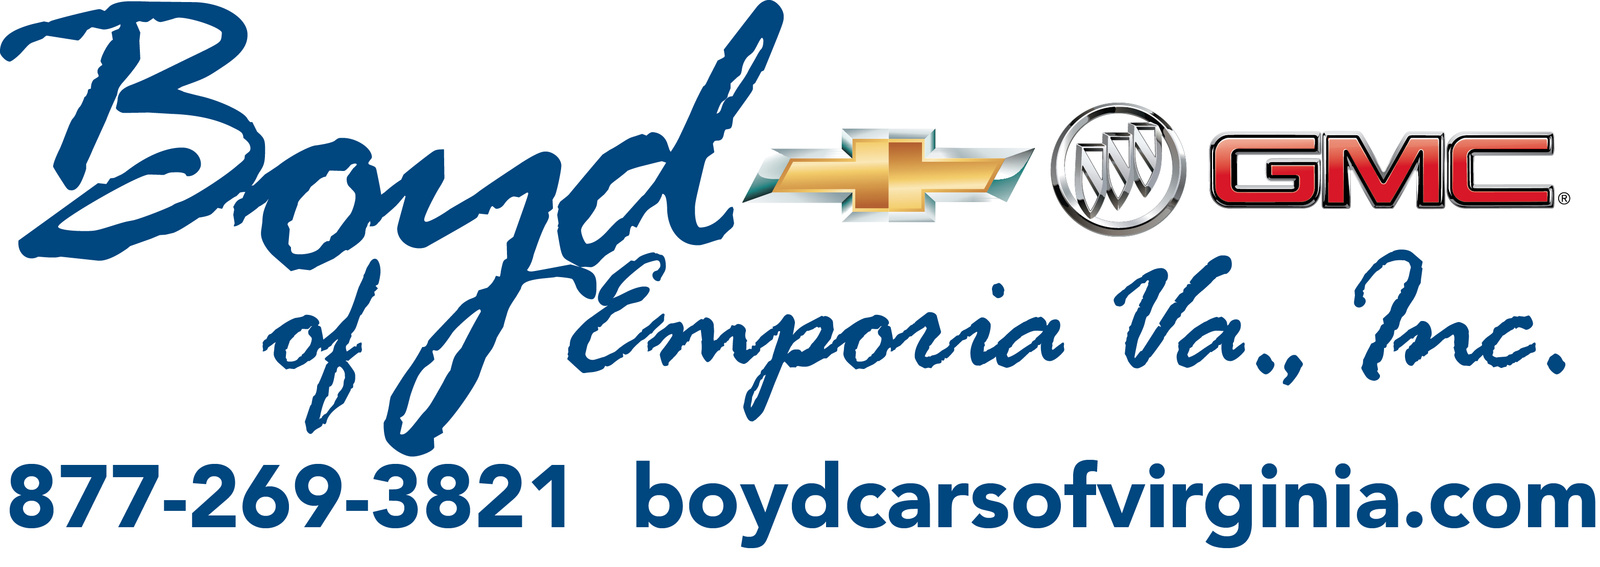 Audi Richmond Va >> Boyd Chevrolet of Emporia - Emporia, VA: Read Consumer ...